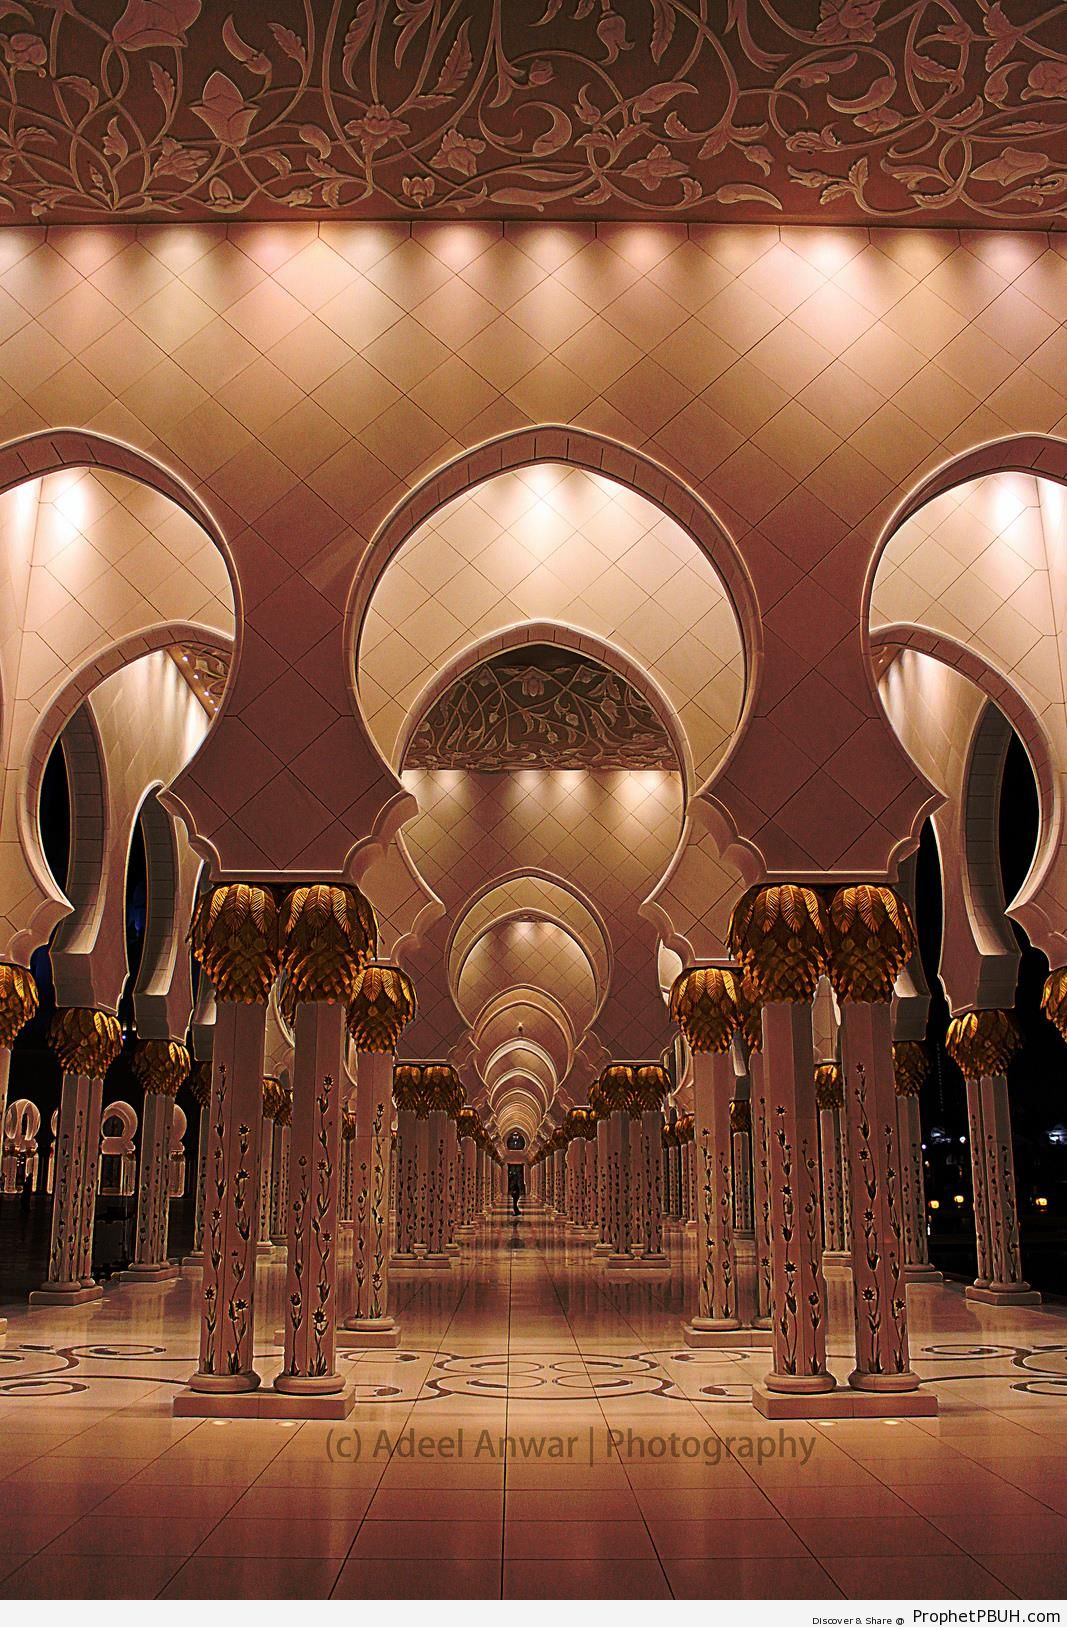 Arches and Columns of Sheikh Zayed Grand Mosque in Abu Dhabi - Abu Dhabi, United Arab Emirates -Picture